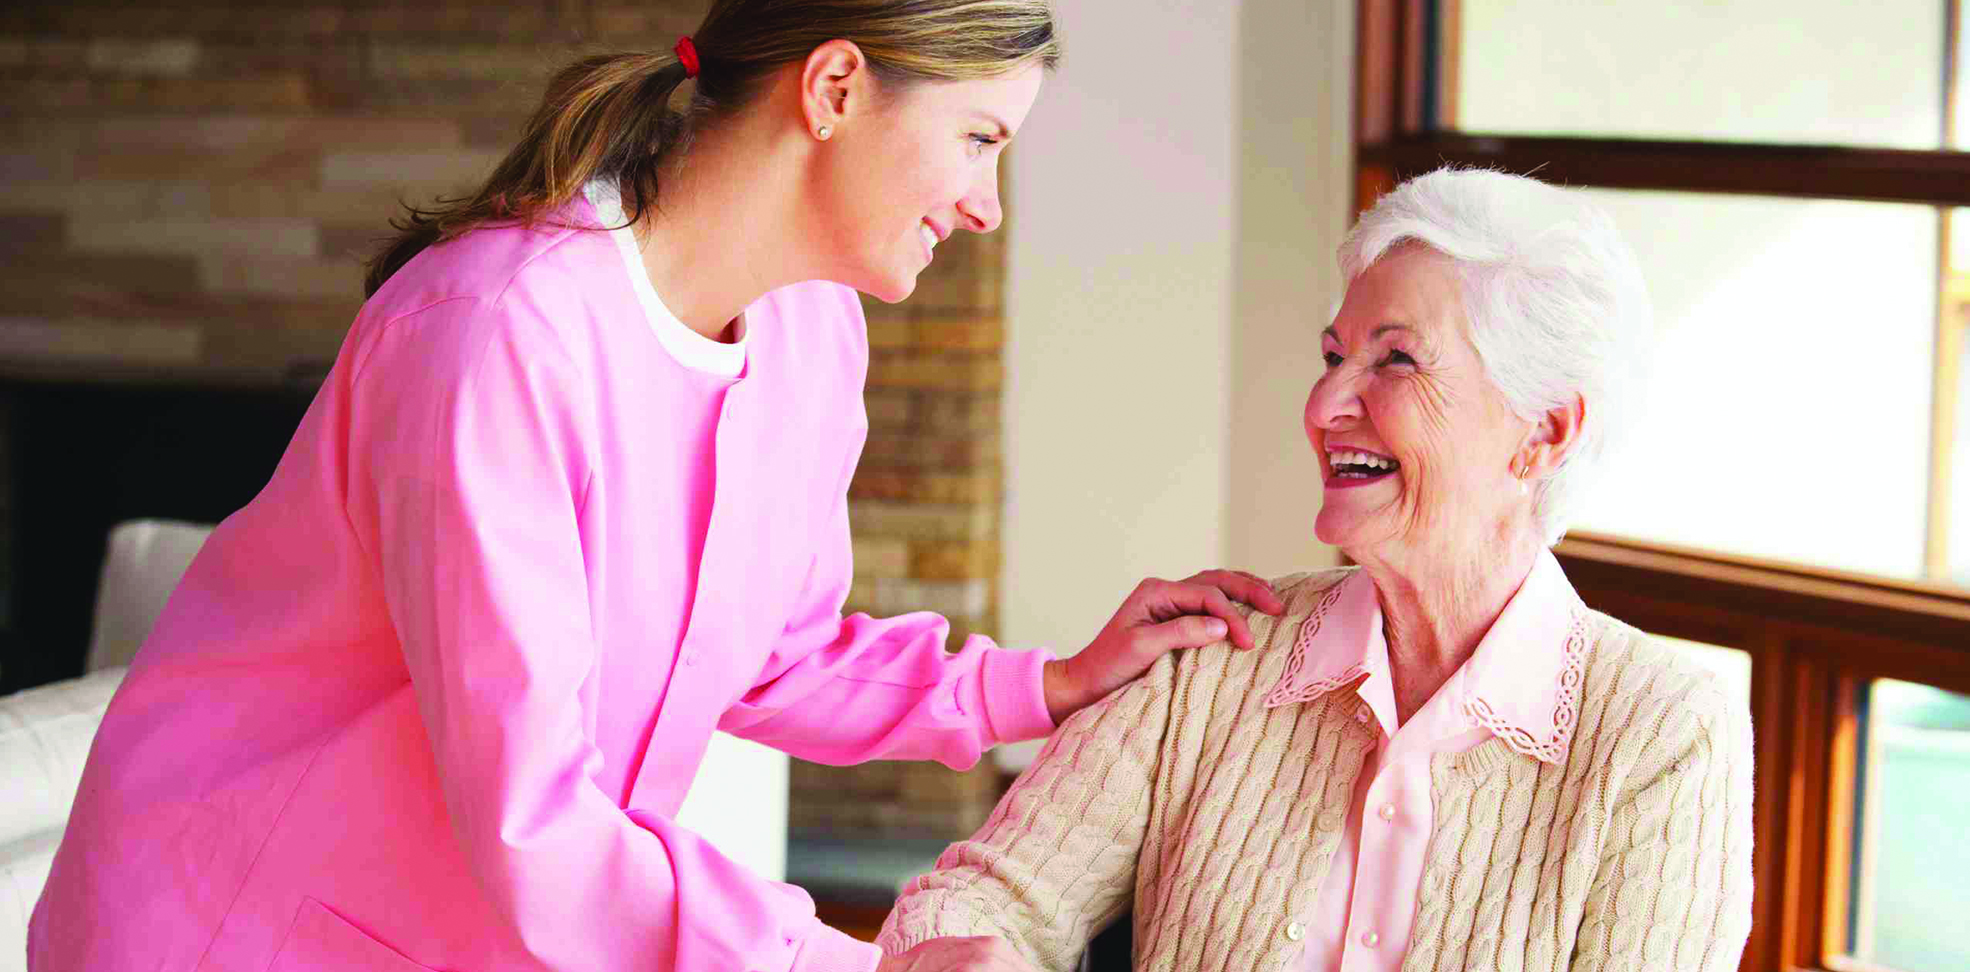 Nurse providing in home senior care